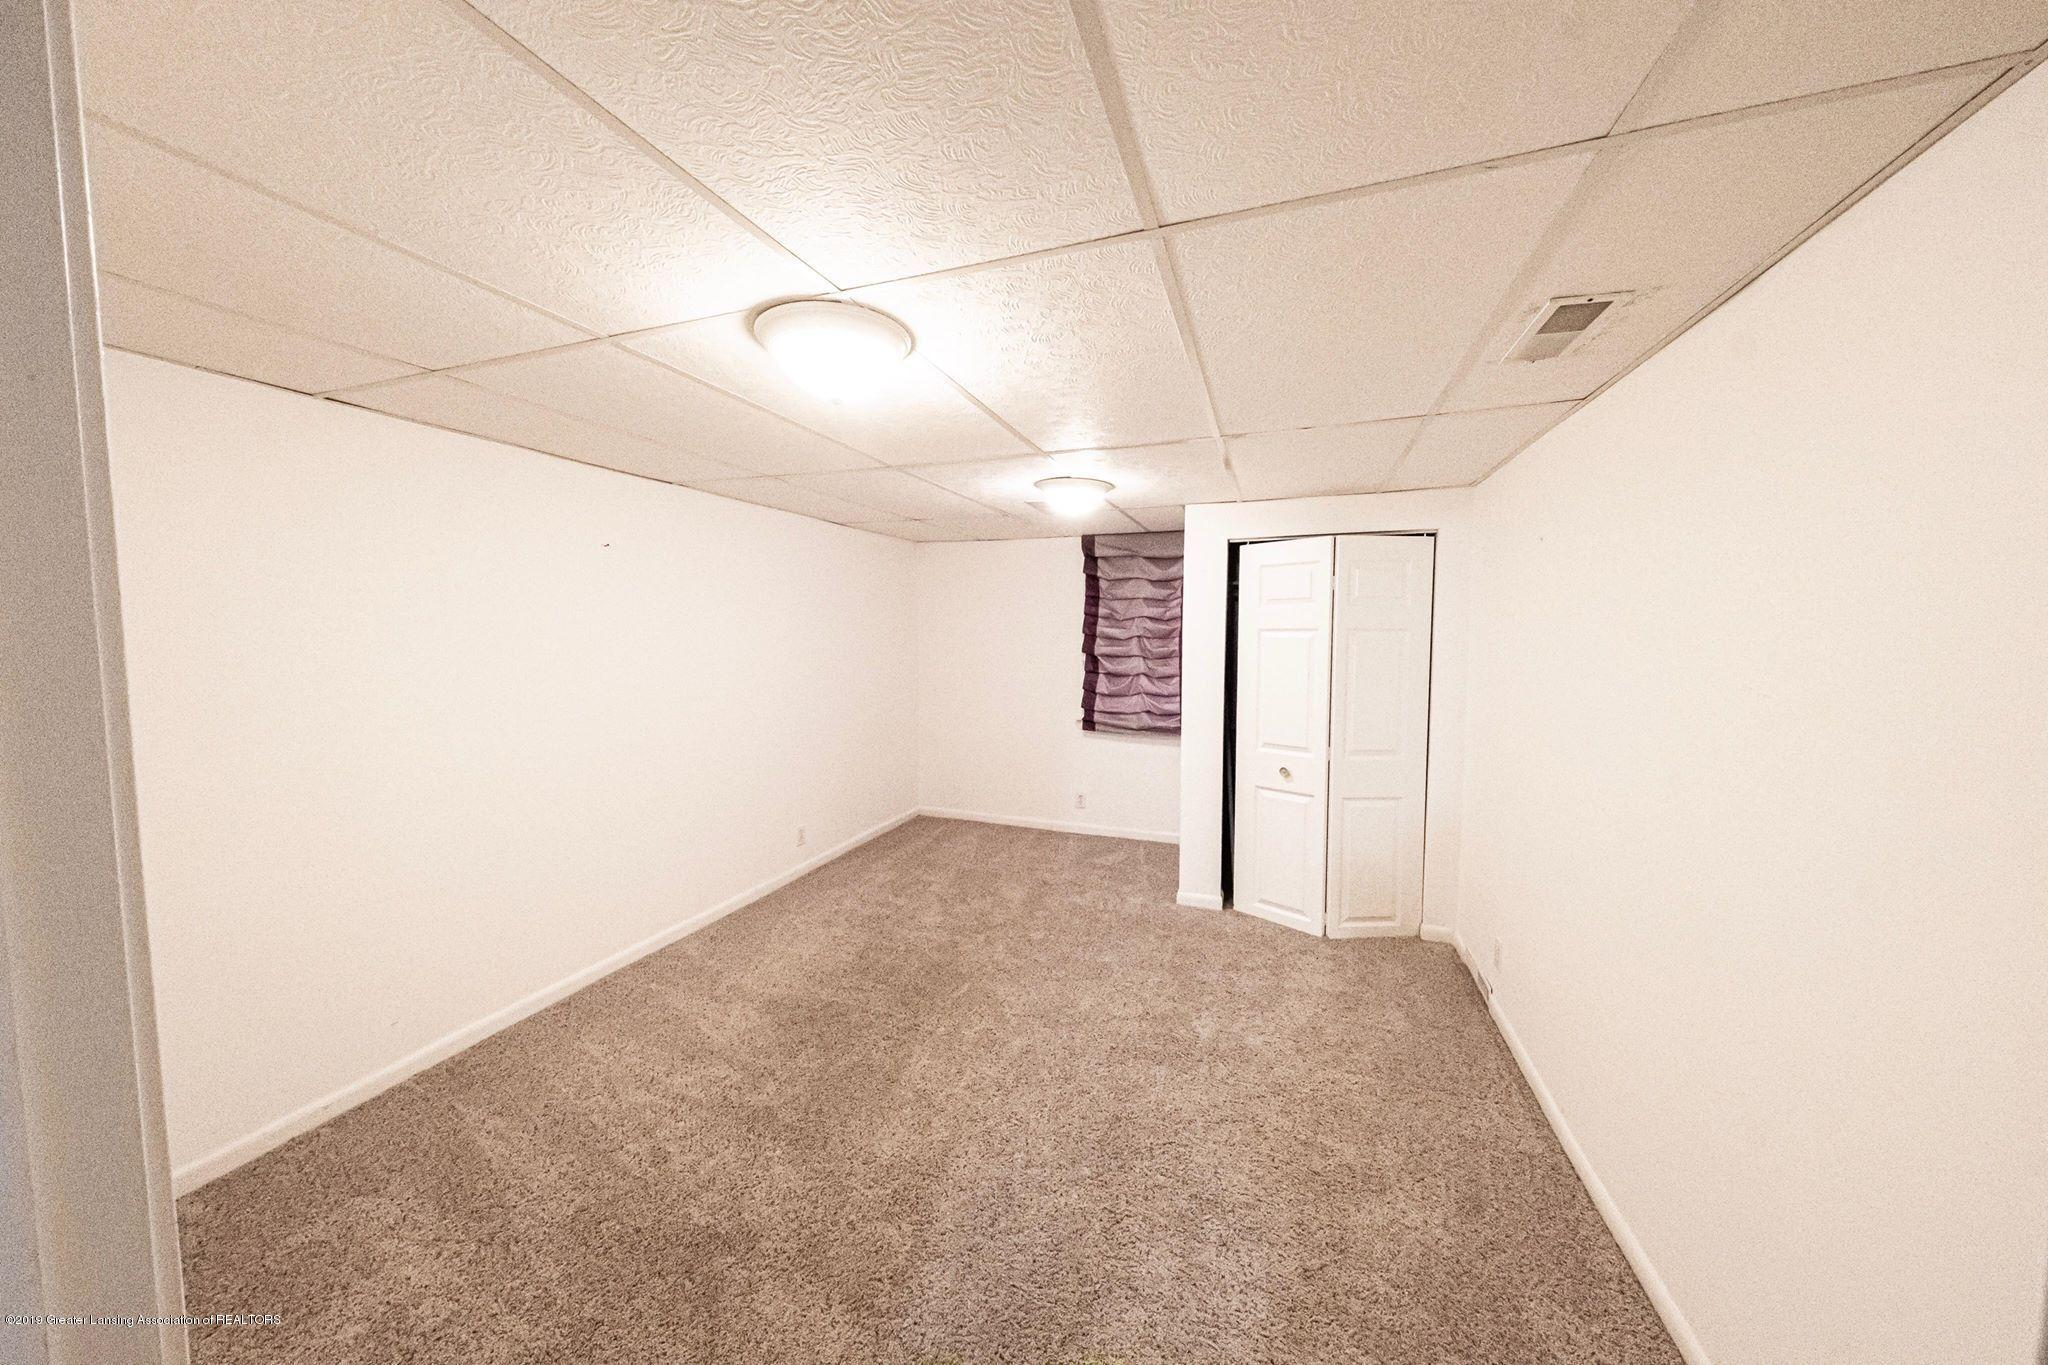 1303 Montgomery St - Basement room - 12